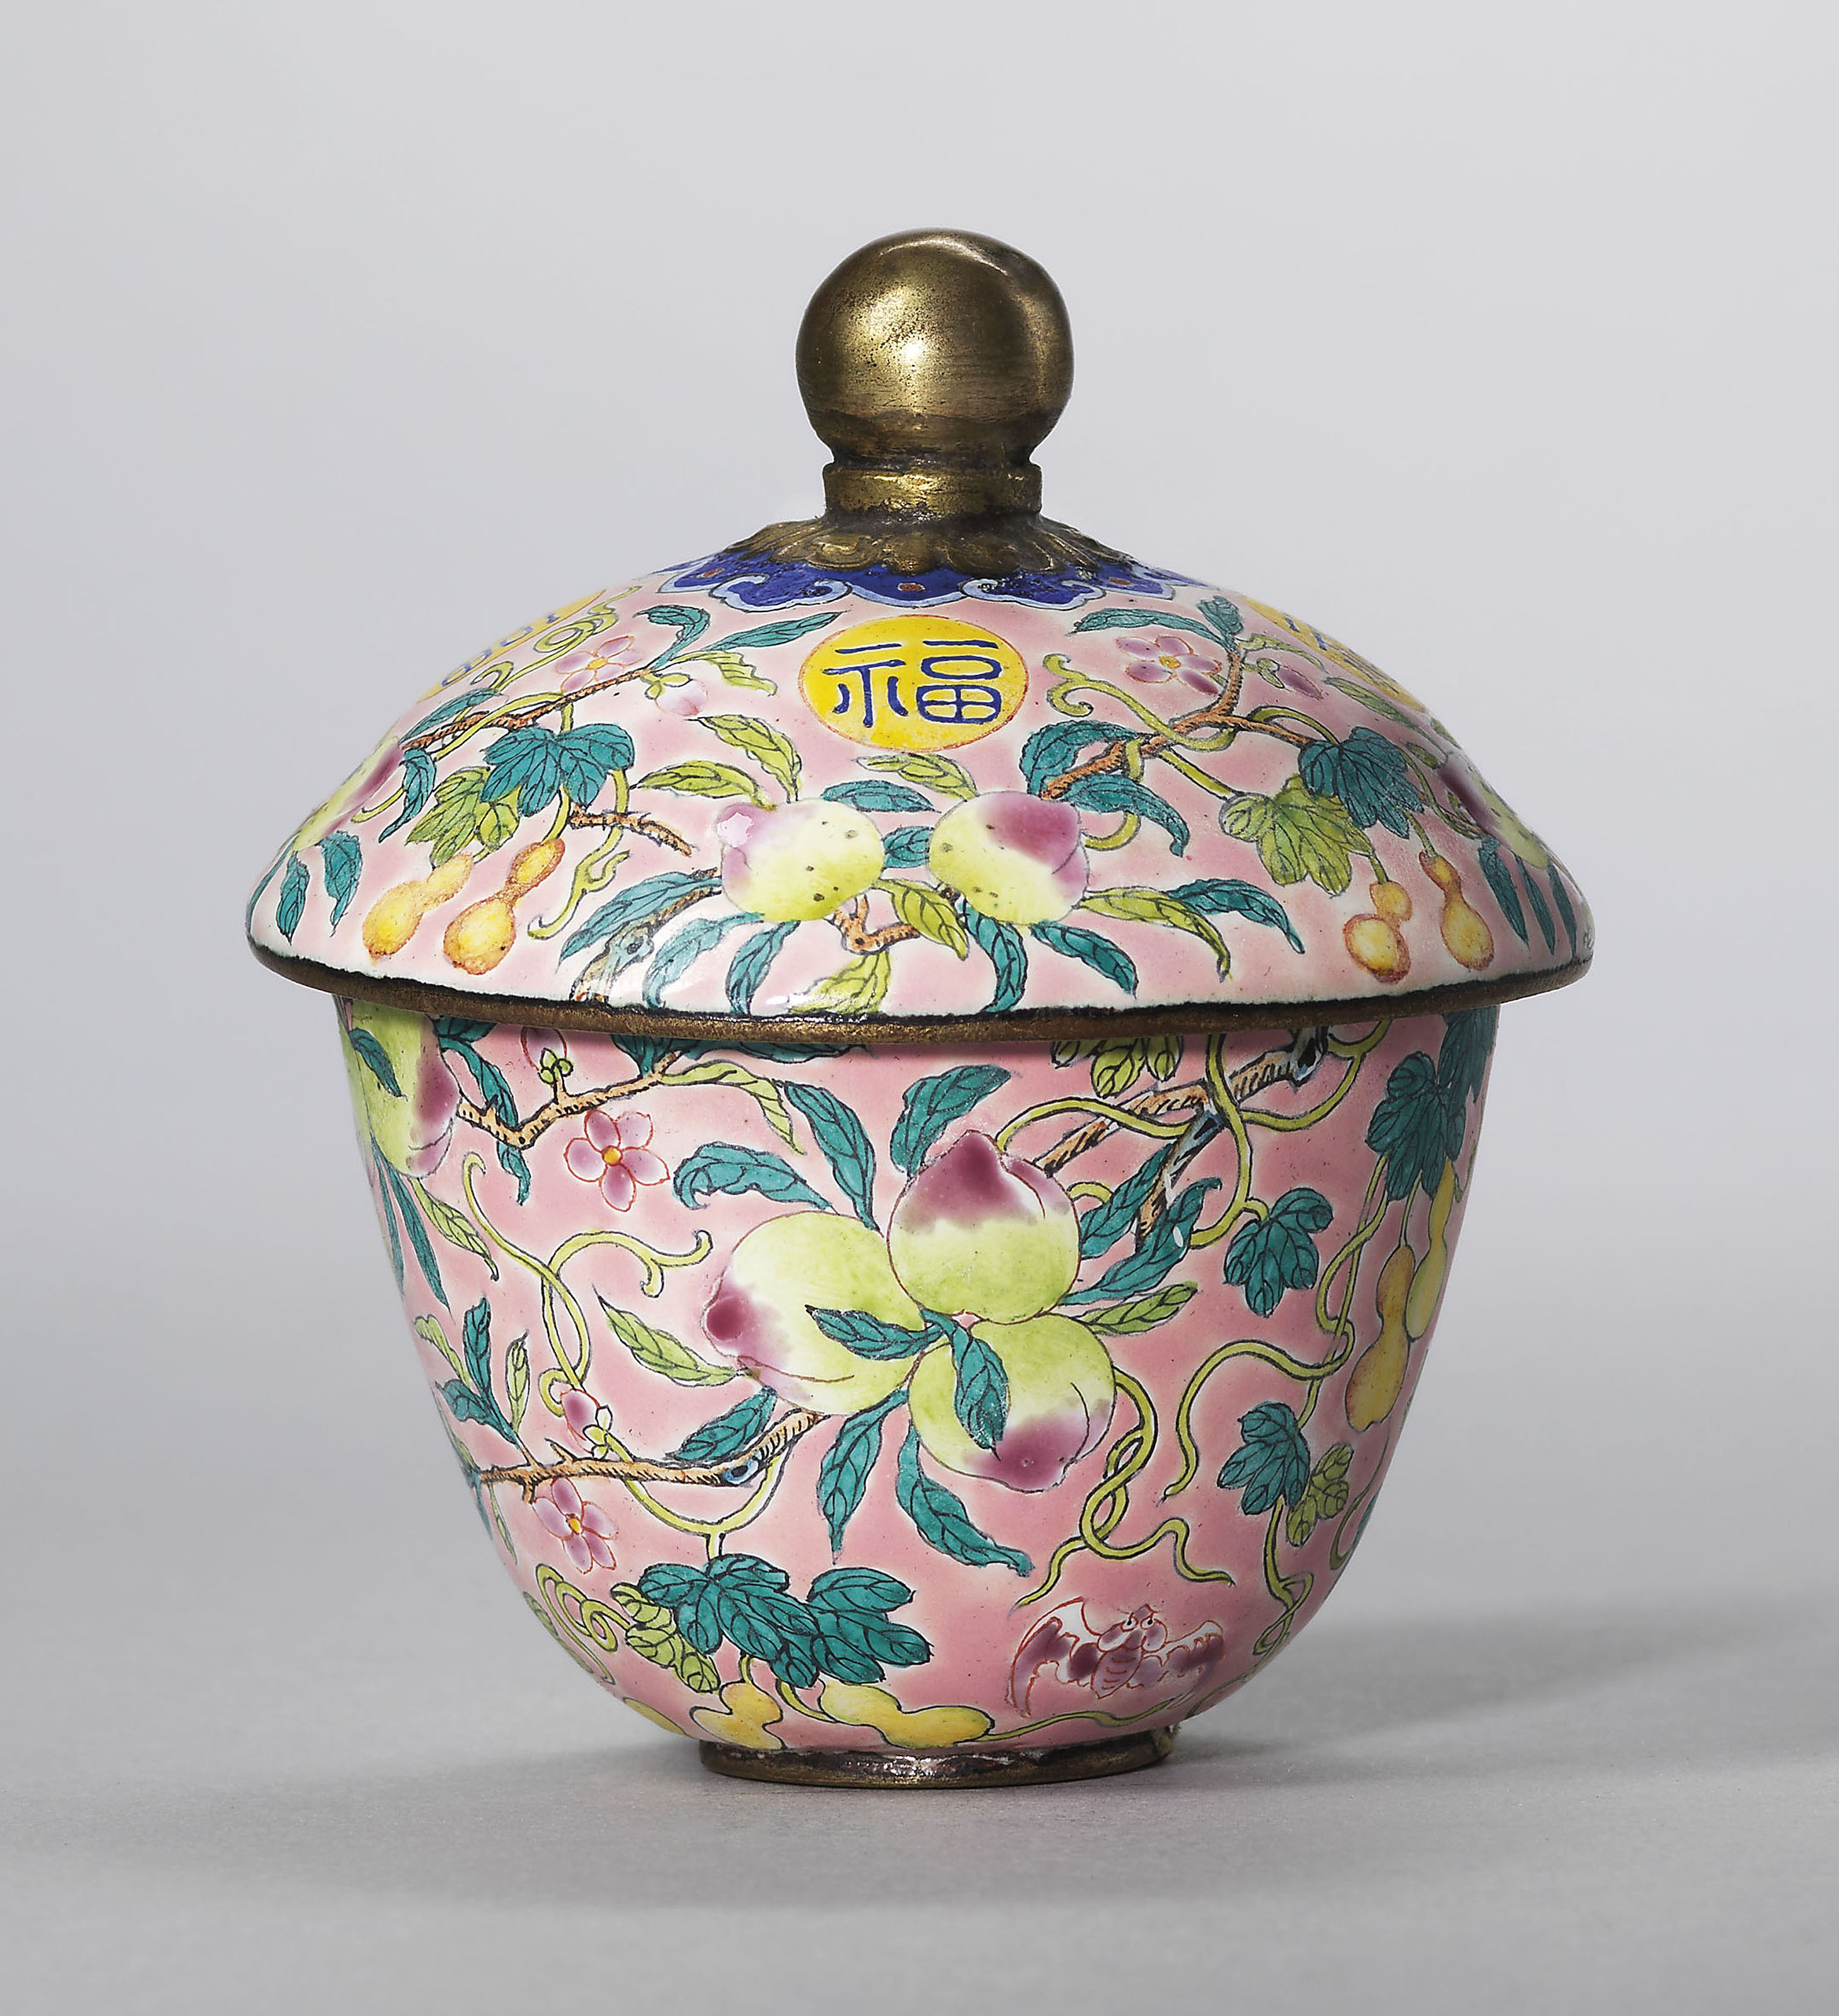 A FAMILLE ROSE PINK-GROUND PAINTED ENAMEL CUP AND COVER